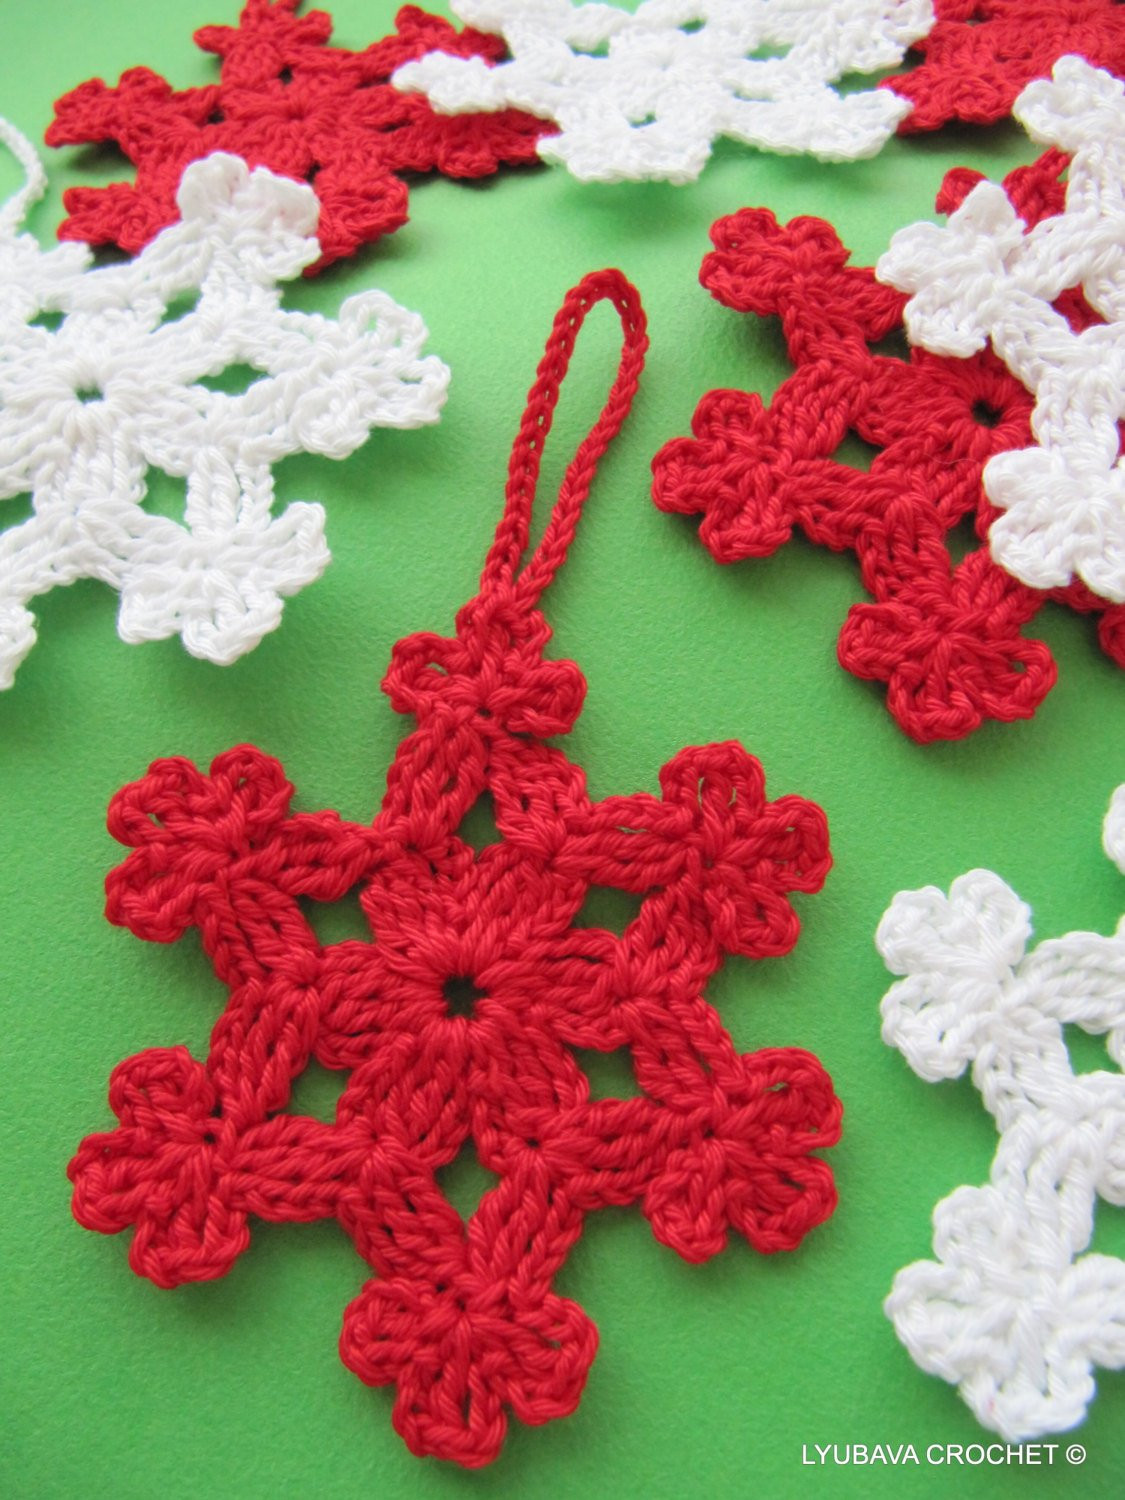 Crochet Snowflake Pattern Best Of Crochet Snowflake Pattern Christmas ornaments Diy Of Wonderful 50 Photos Crochet Snowflake Pattern